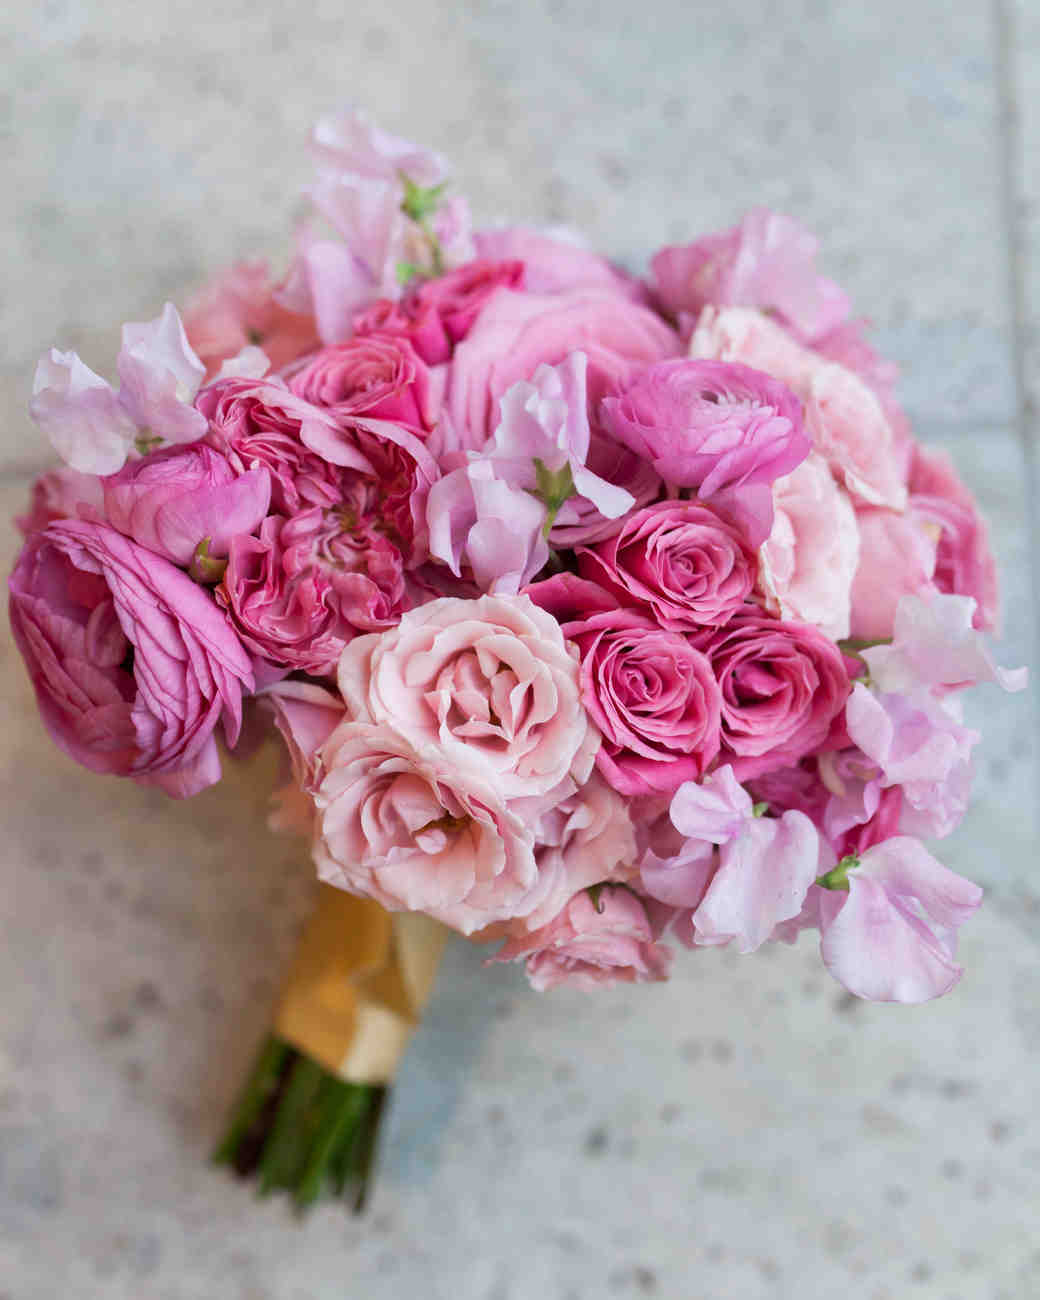 Flower Wedding Bouquet: Our Favorite Rose Wedding Bouquets